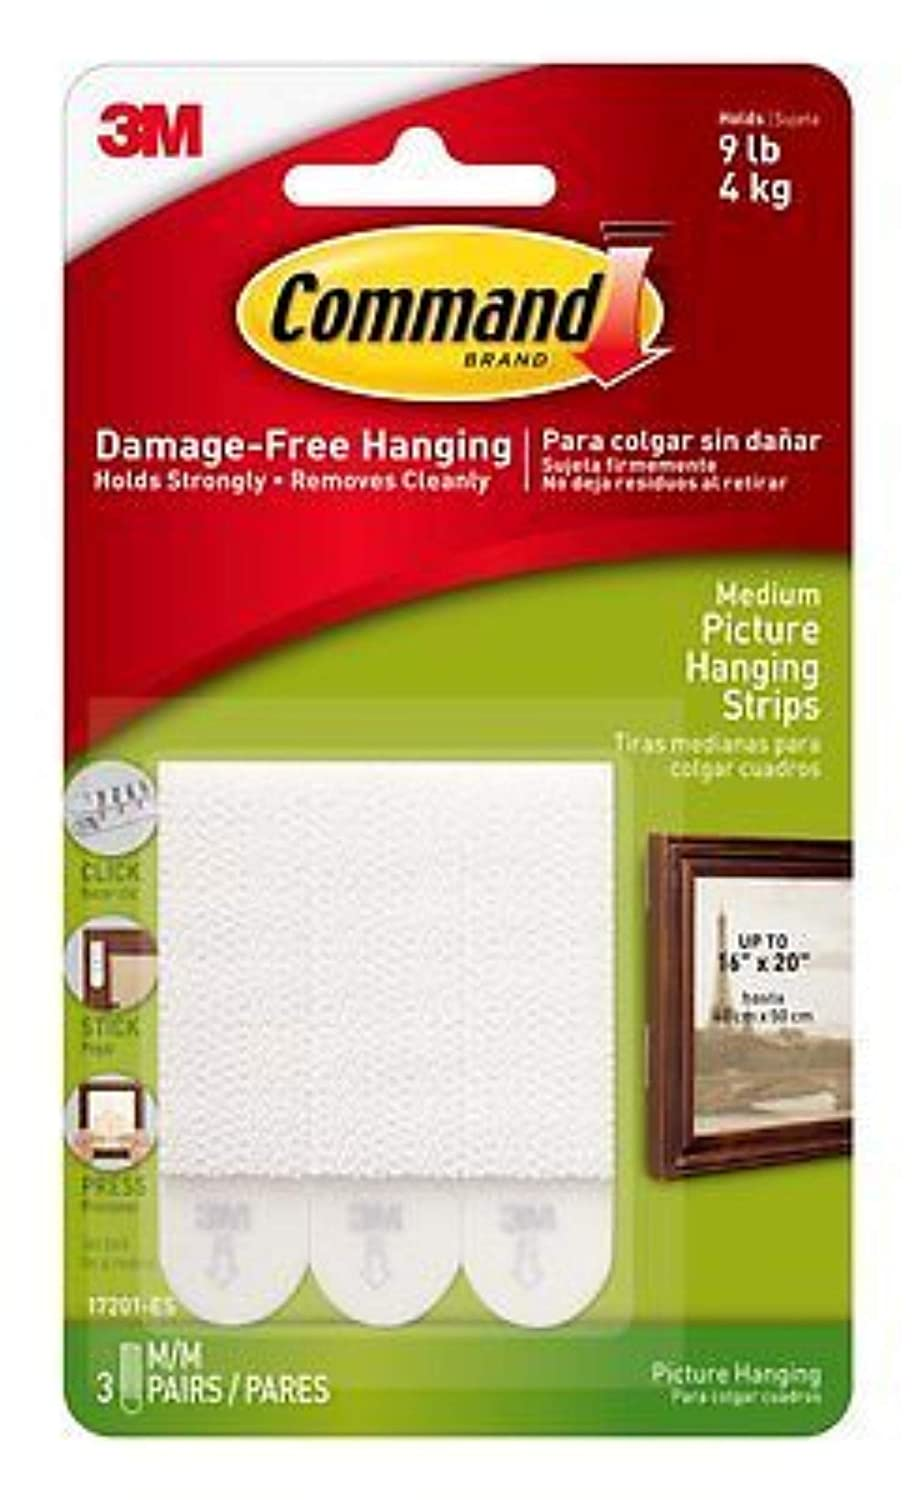 3M Command Picture Hanging Strip ((Medium))